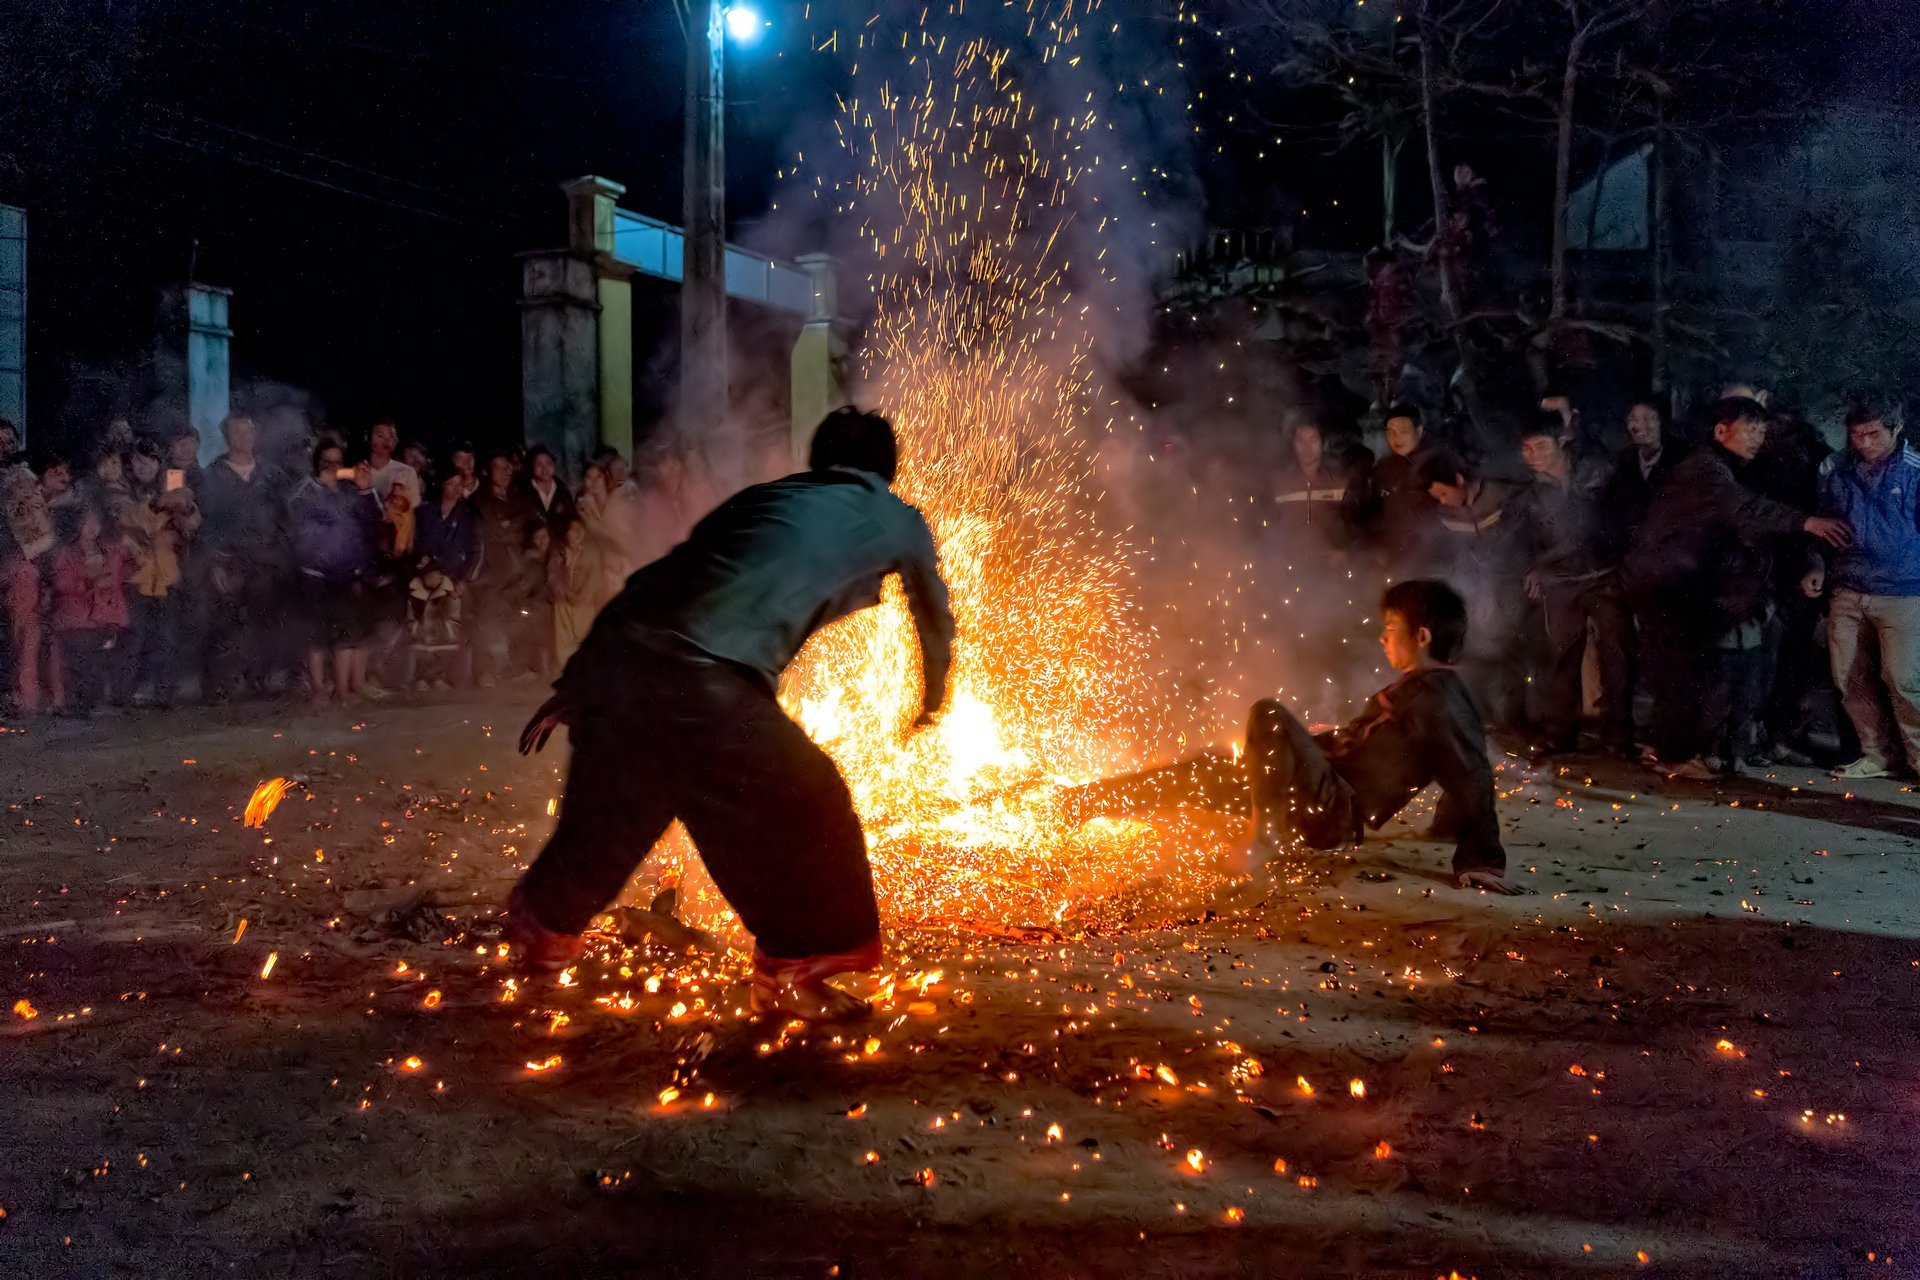 Fire Dancing Festival in Vietnam 2019 - Best Time